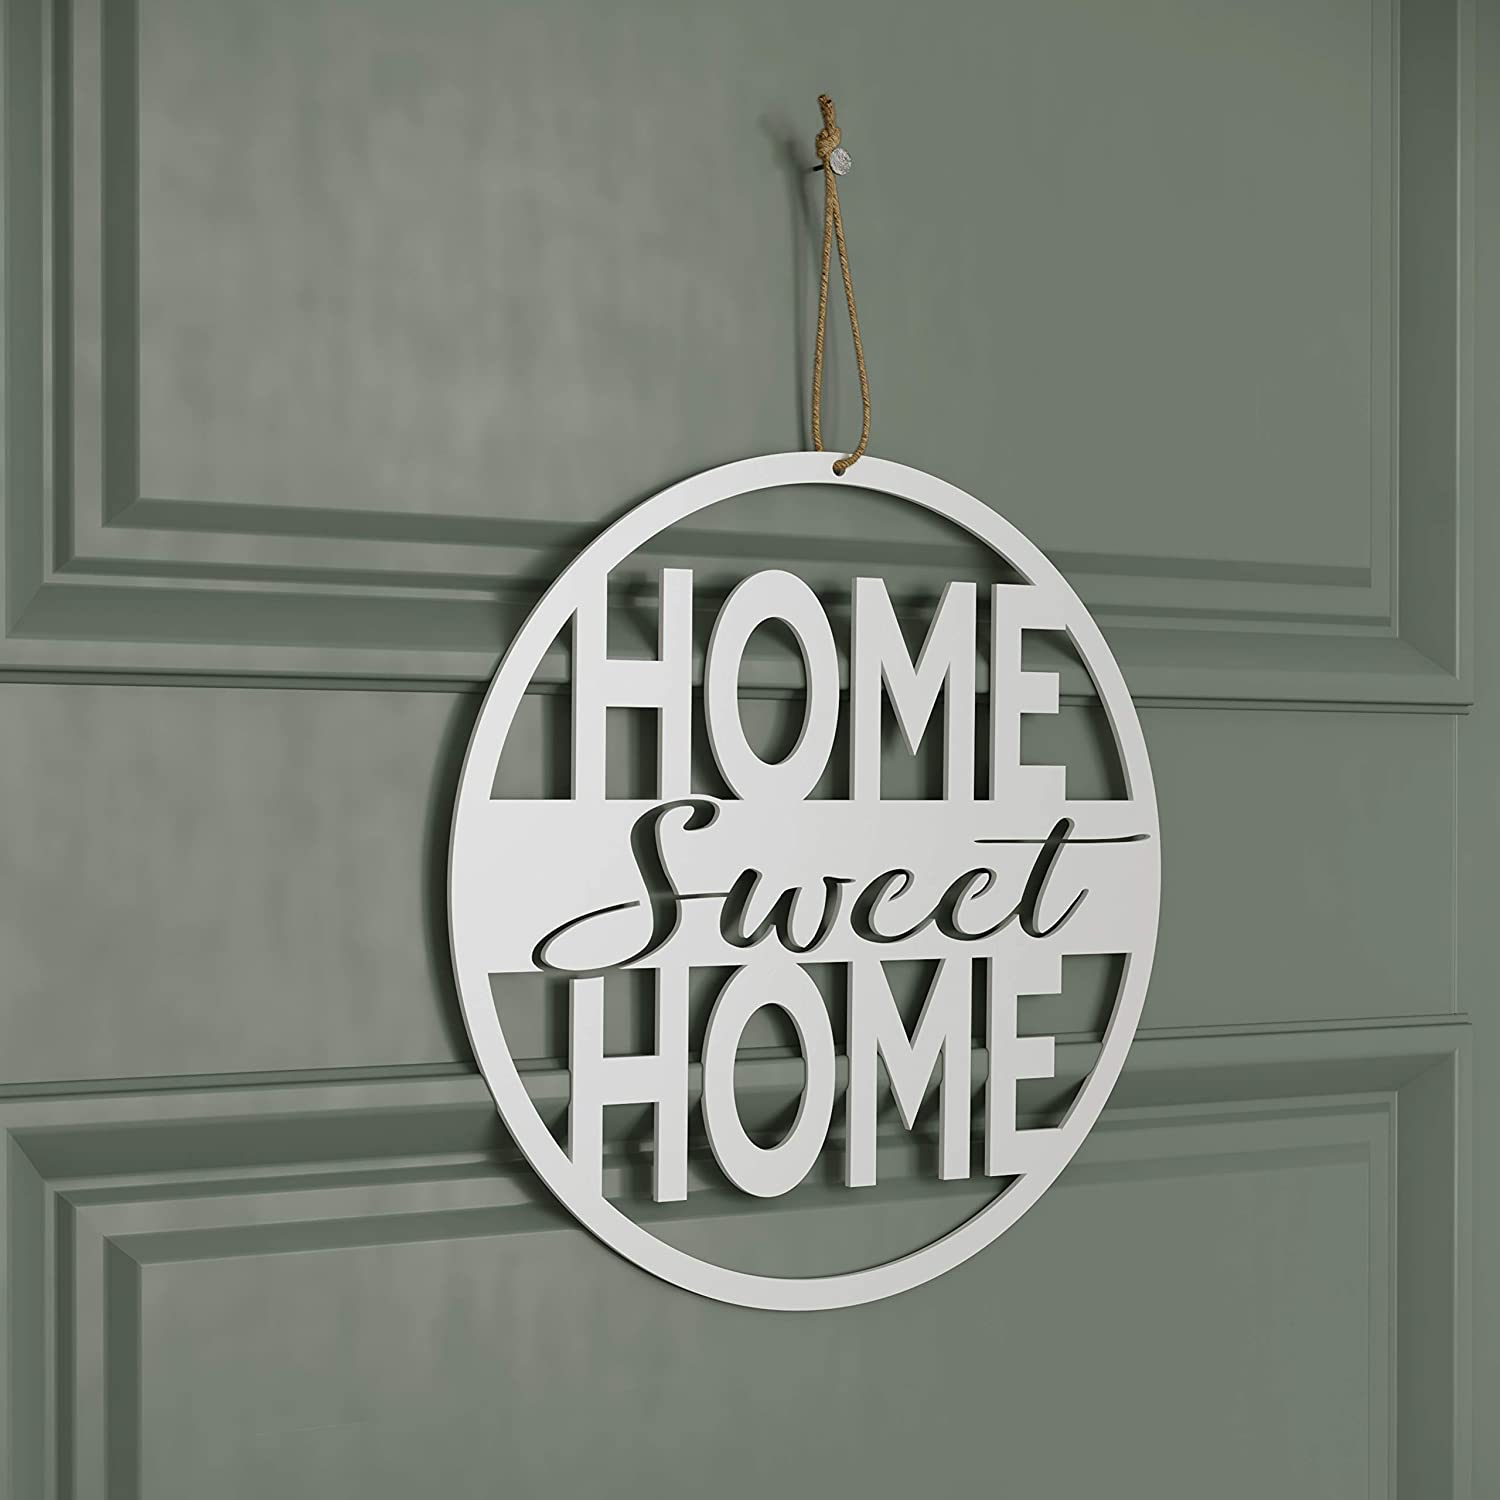 "American Maker 'Home Sweet Home' Steel Wall Art Decor, Laser Cut Metal Sign Decoration, Hanging Word Plaque for Family Room, Entryway or Kitchen, Made in the USA, White, 11.5""D"